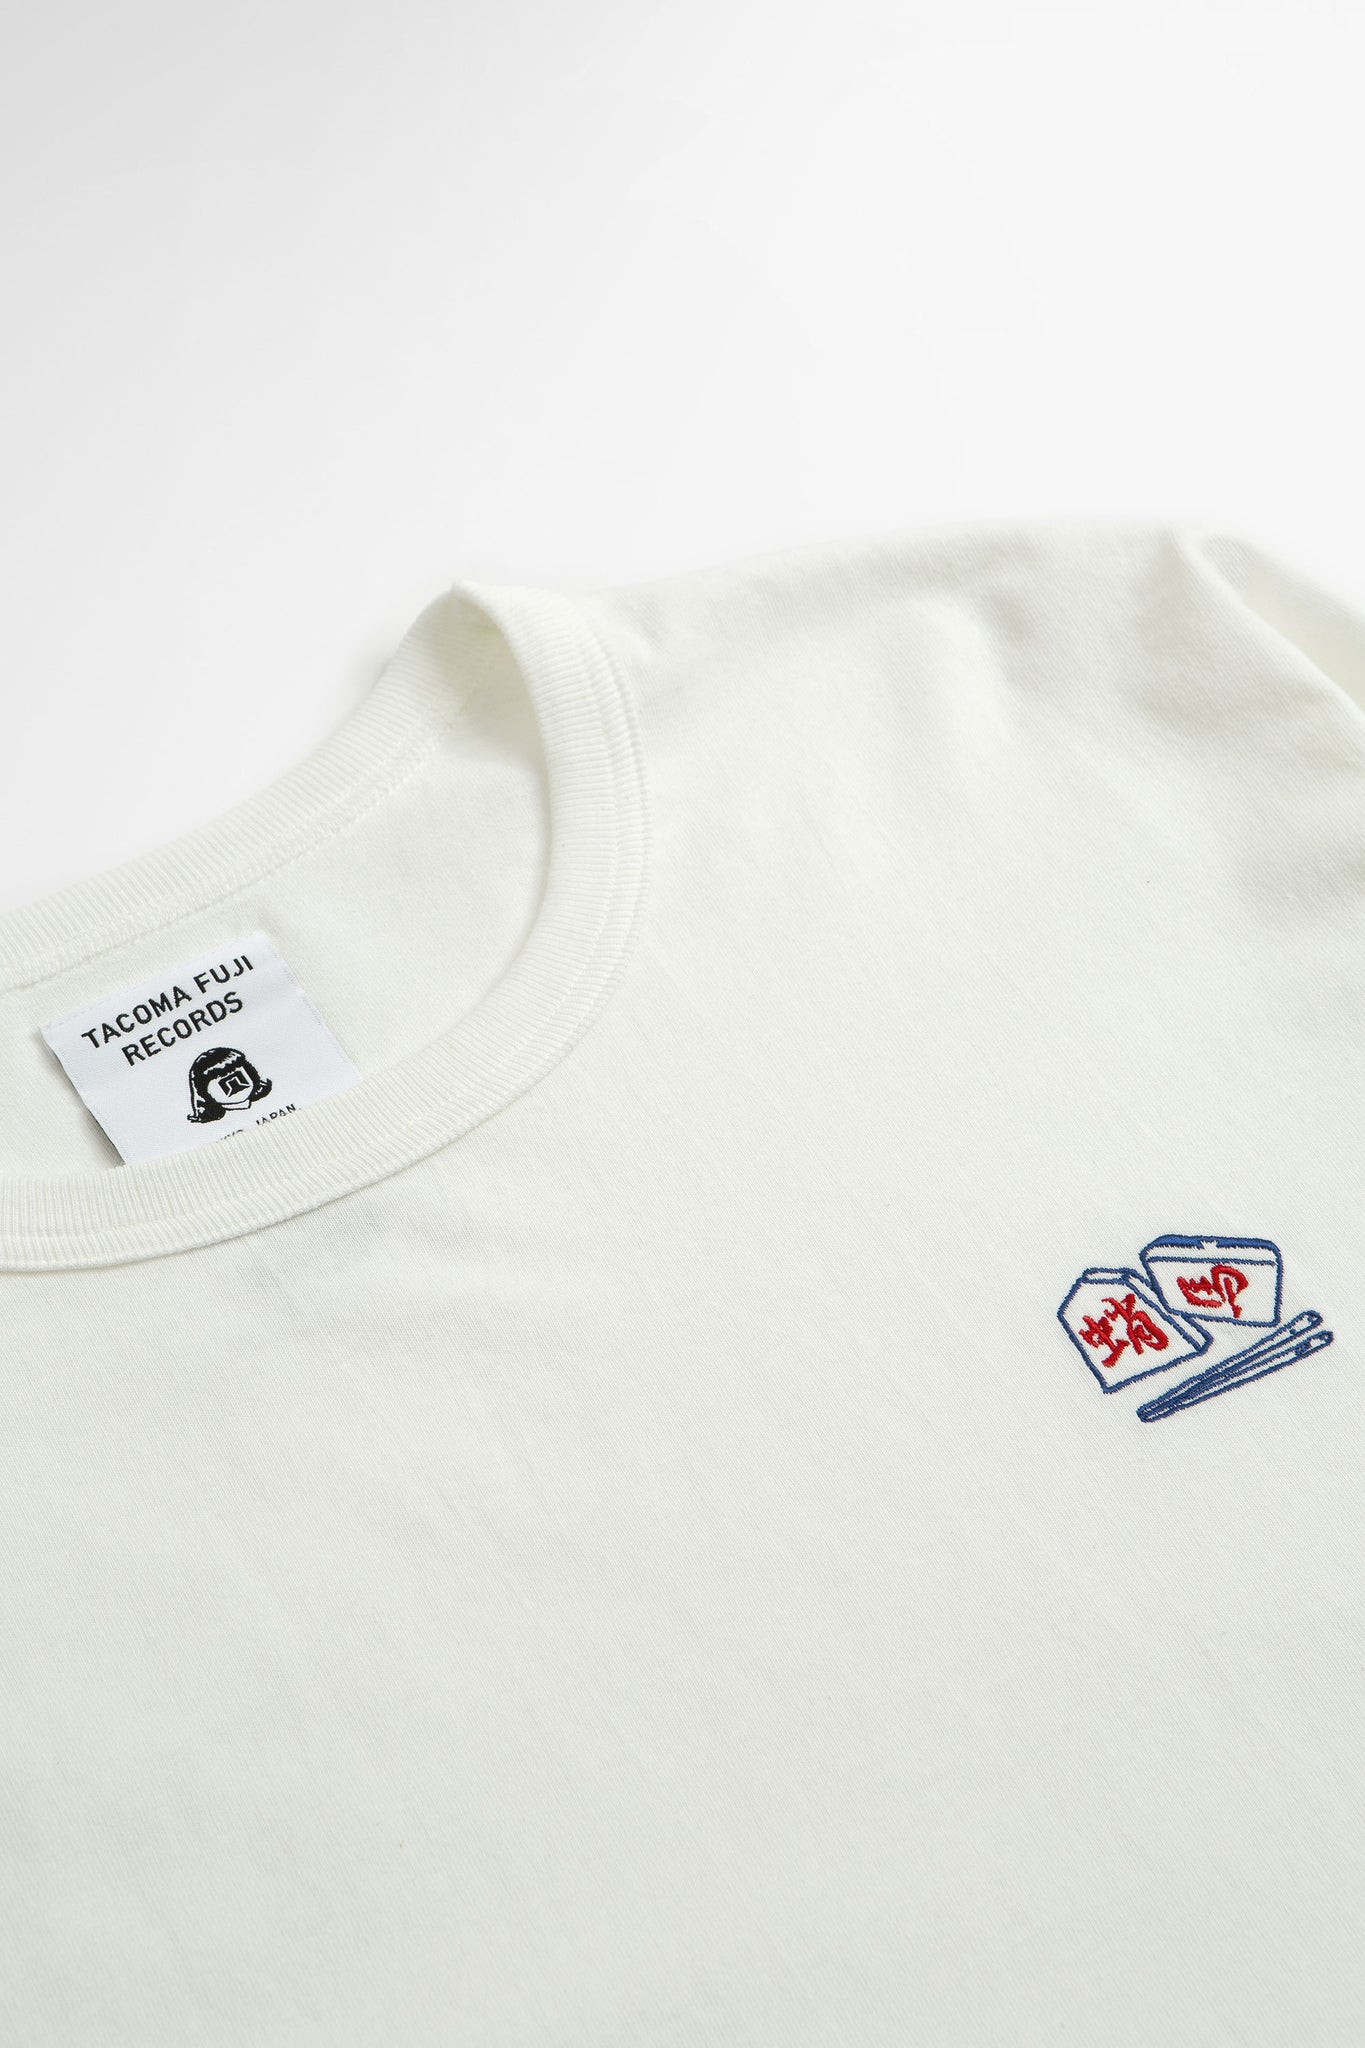 Chopsticks crisis t-shirt white